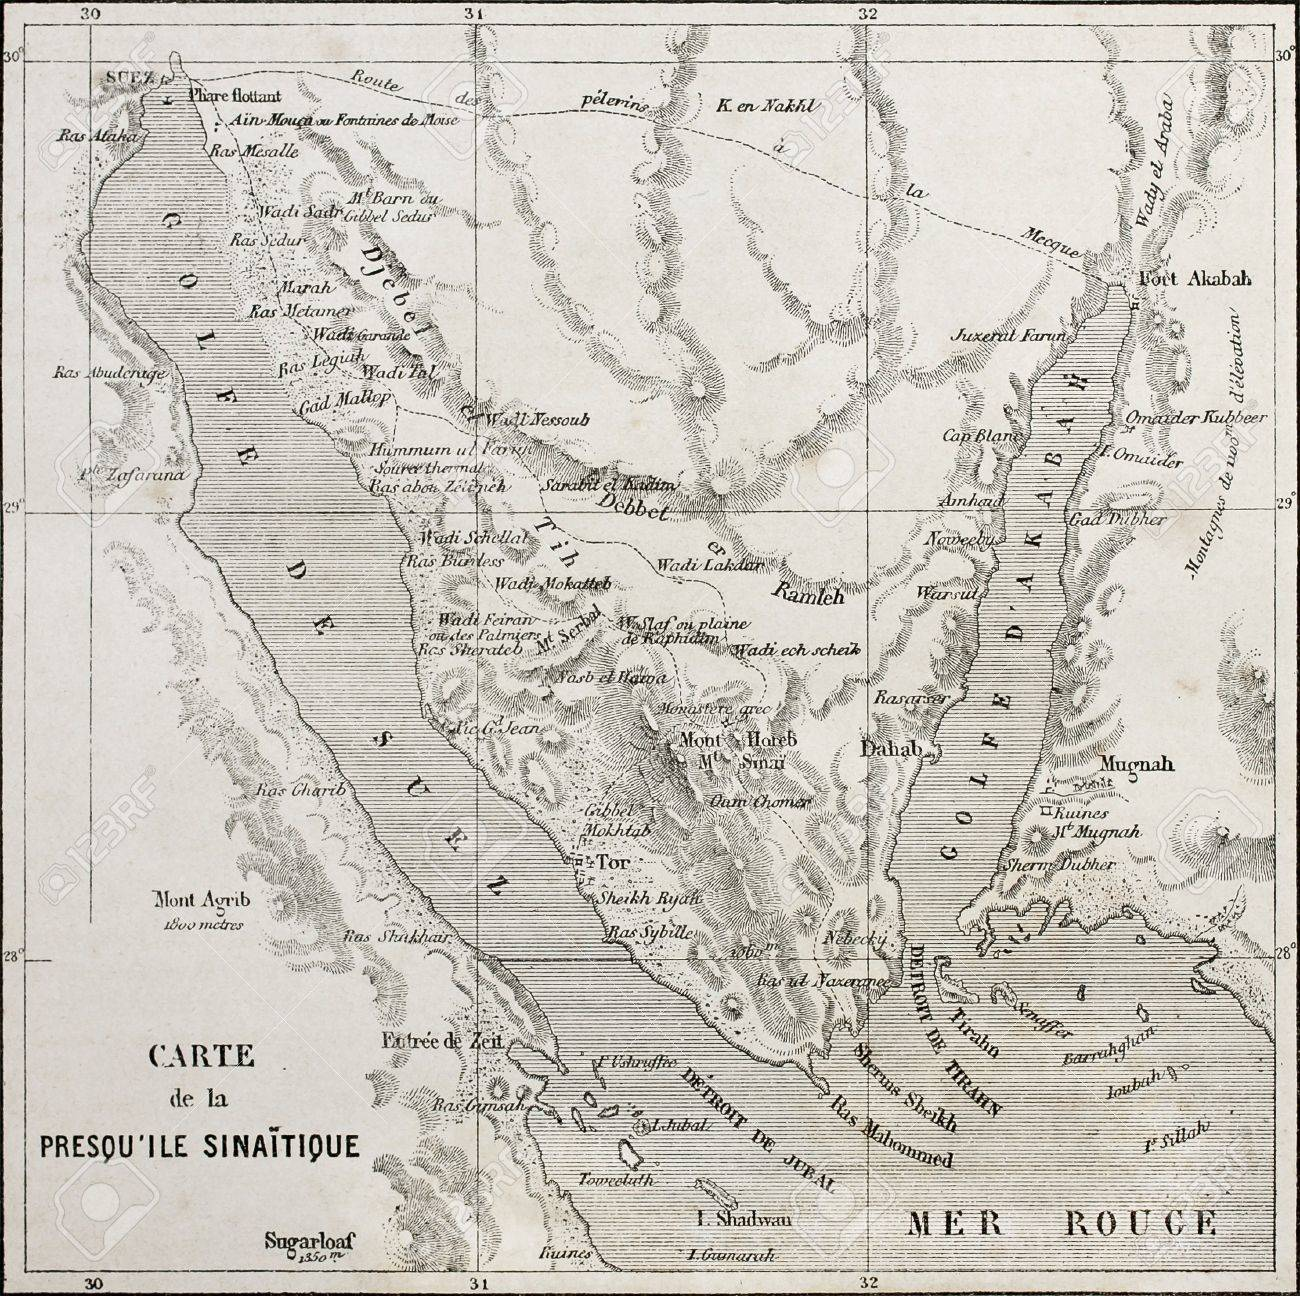 Old map of Sinai peninsula  Created by Erhard, published on